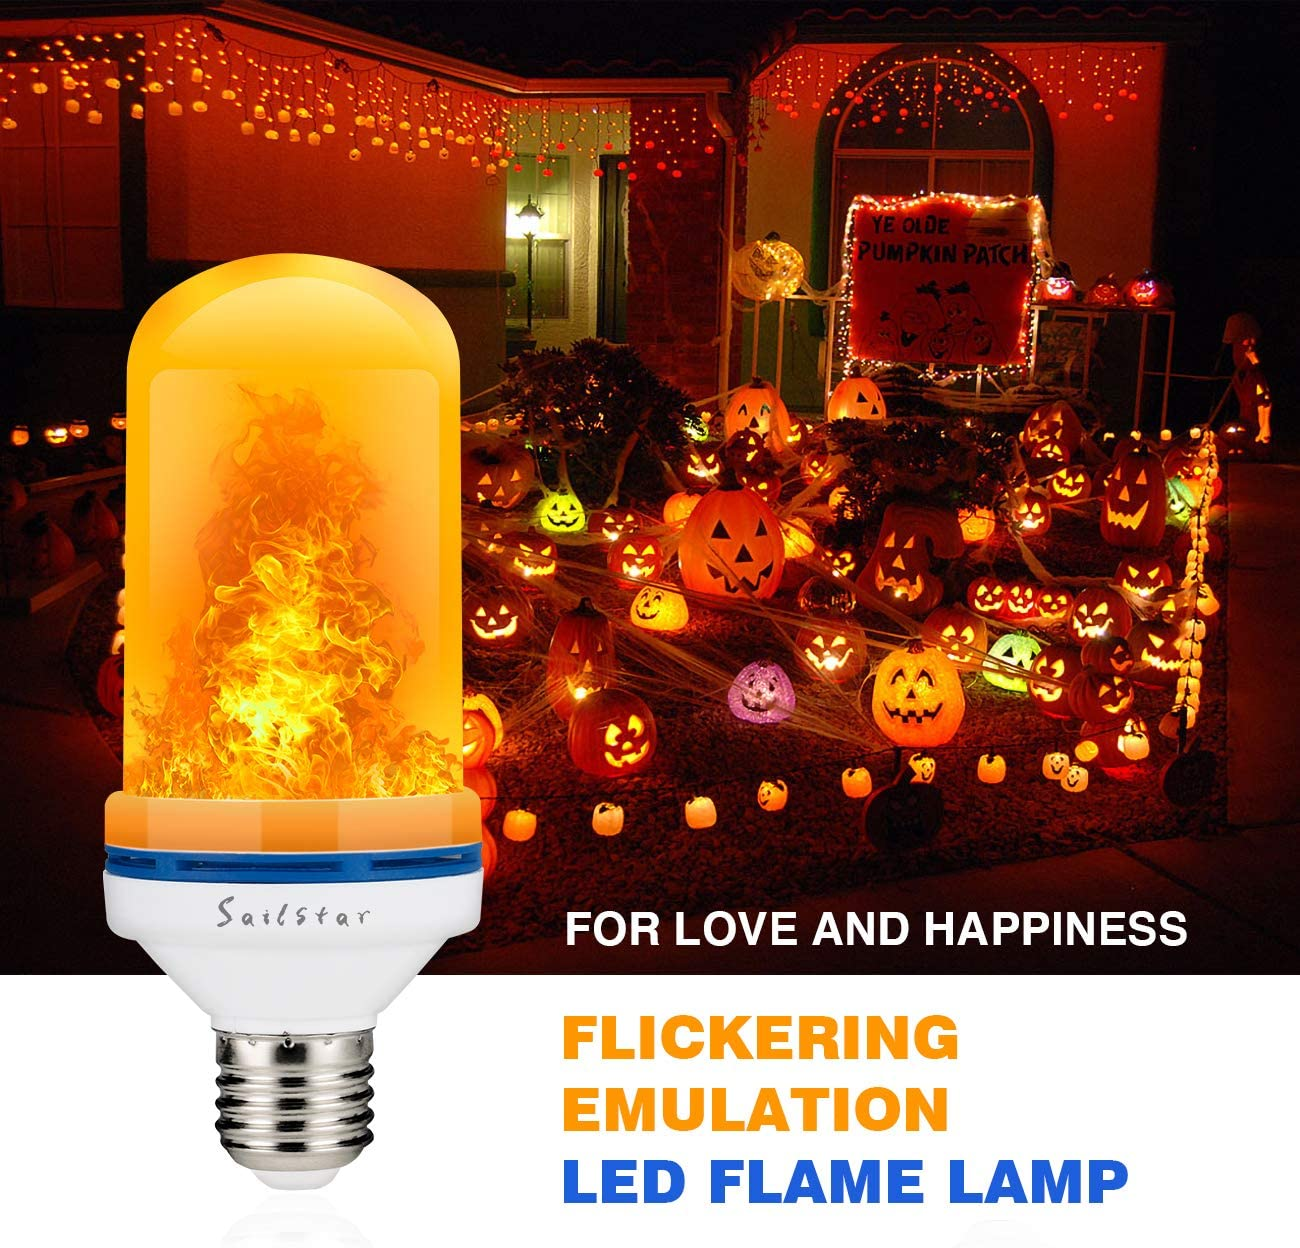 LED Flame Effect Light Bulb Flickering Fire Light Decorative Lamp for Christmas,Party,Bar,Restaurant,Wall Light,Festival Sailstar 4 Watts 1500K Lighting with Standard E26 Base 2-Pack